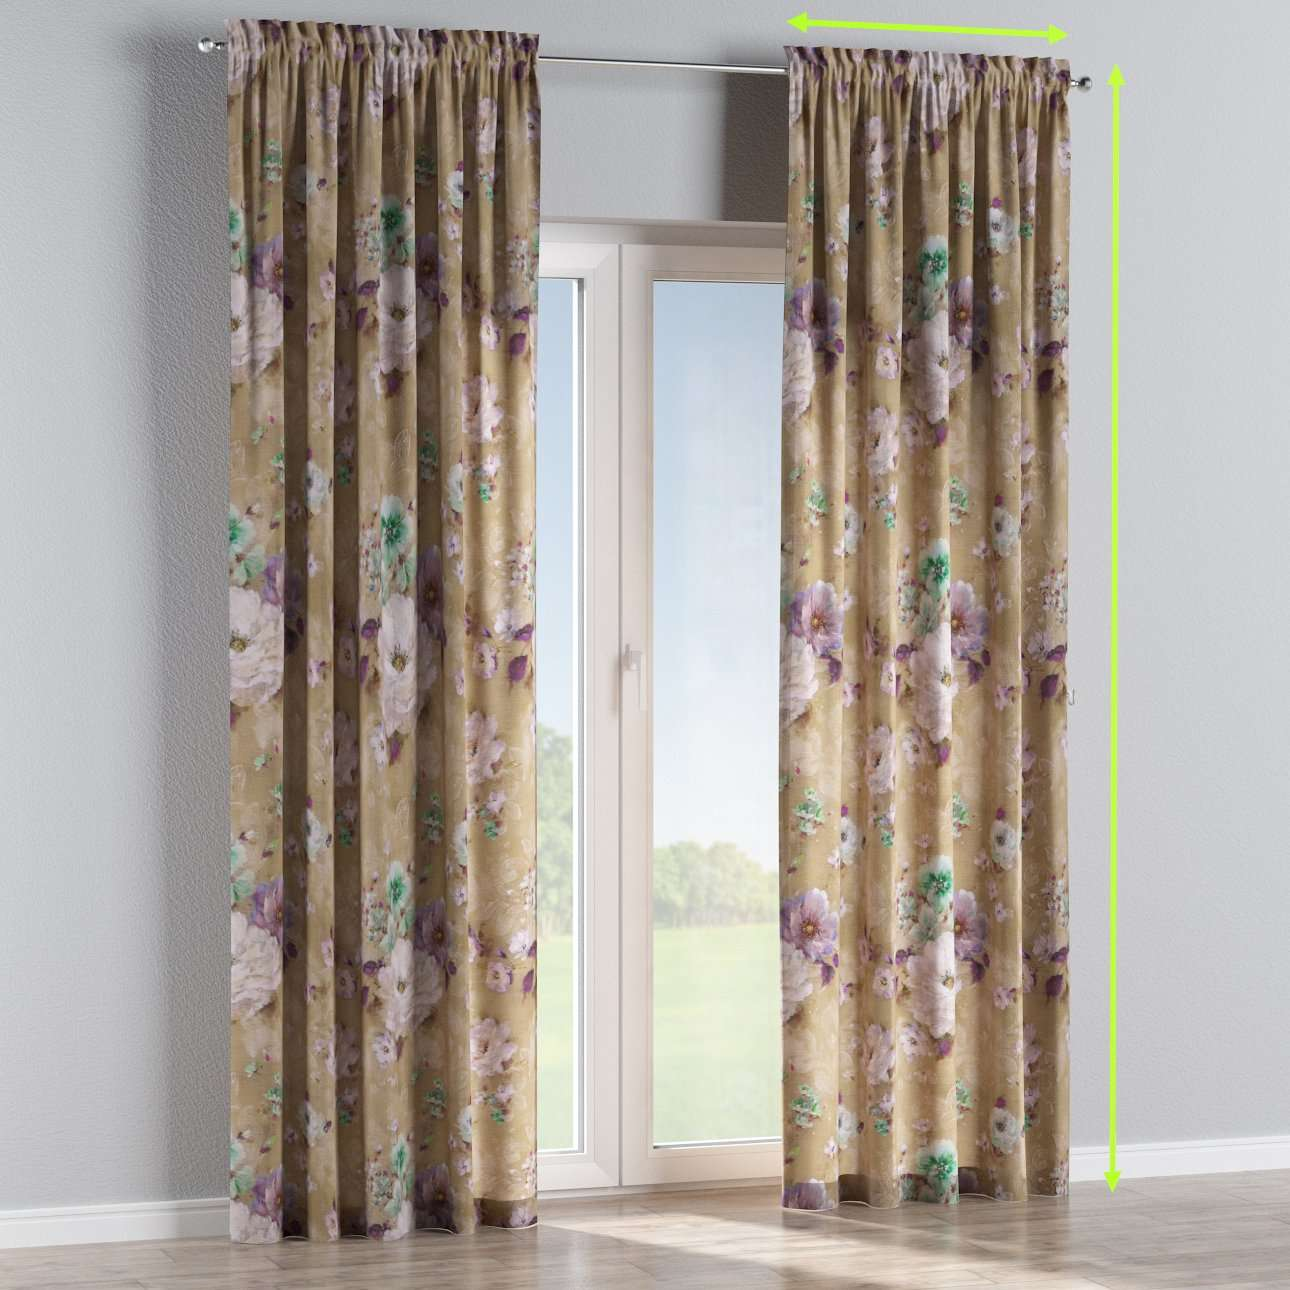 Slot and frill lined curtains in collection Monet, fabric: 137-82